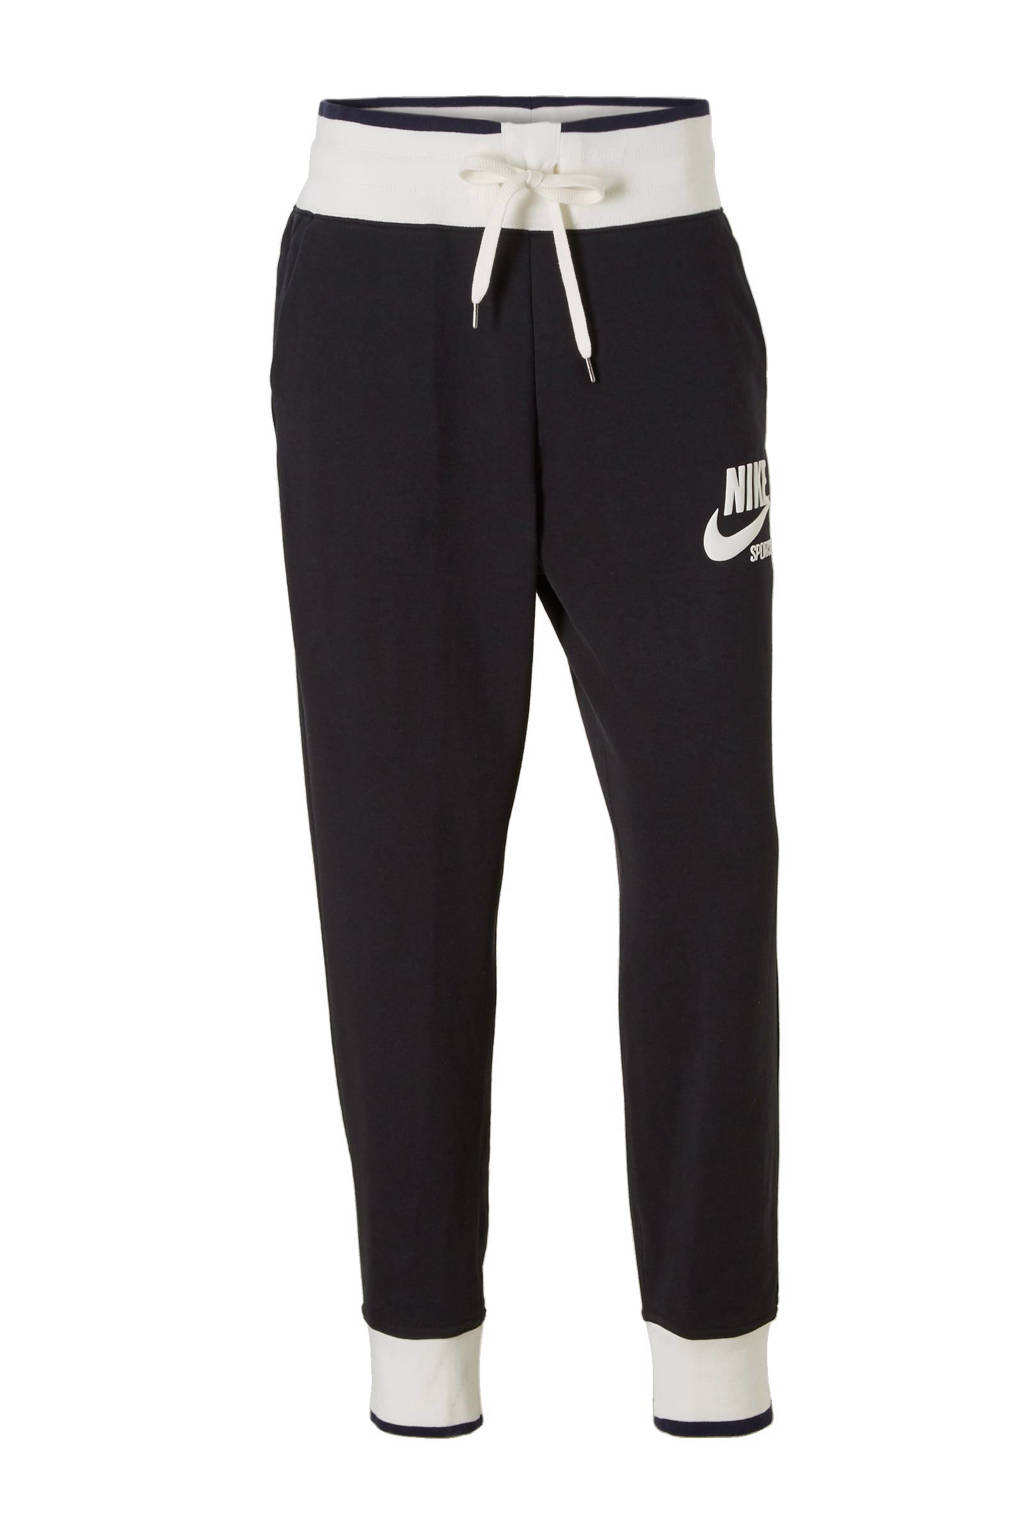 Strakke Joggingbroek Dames.Nike Joggingbroek Wehkamp